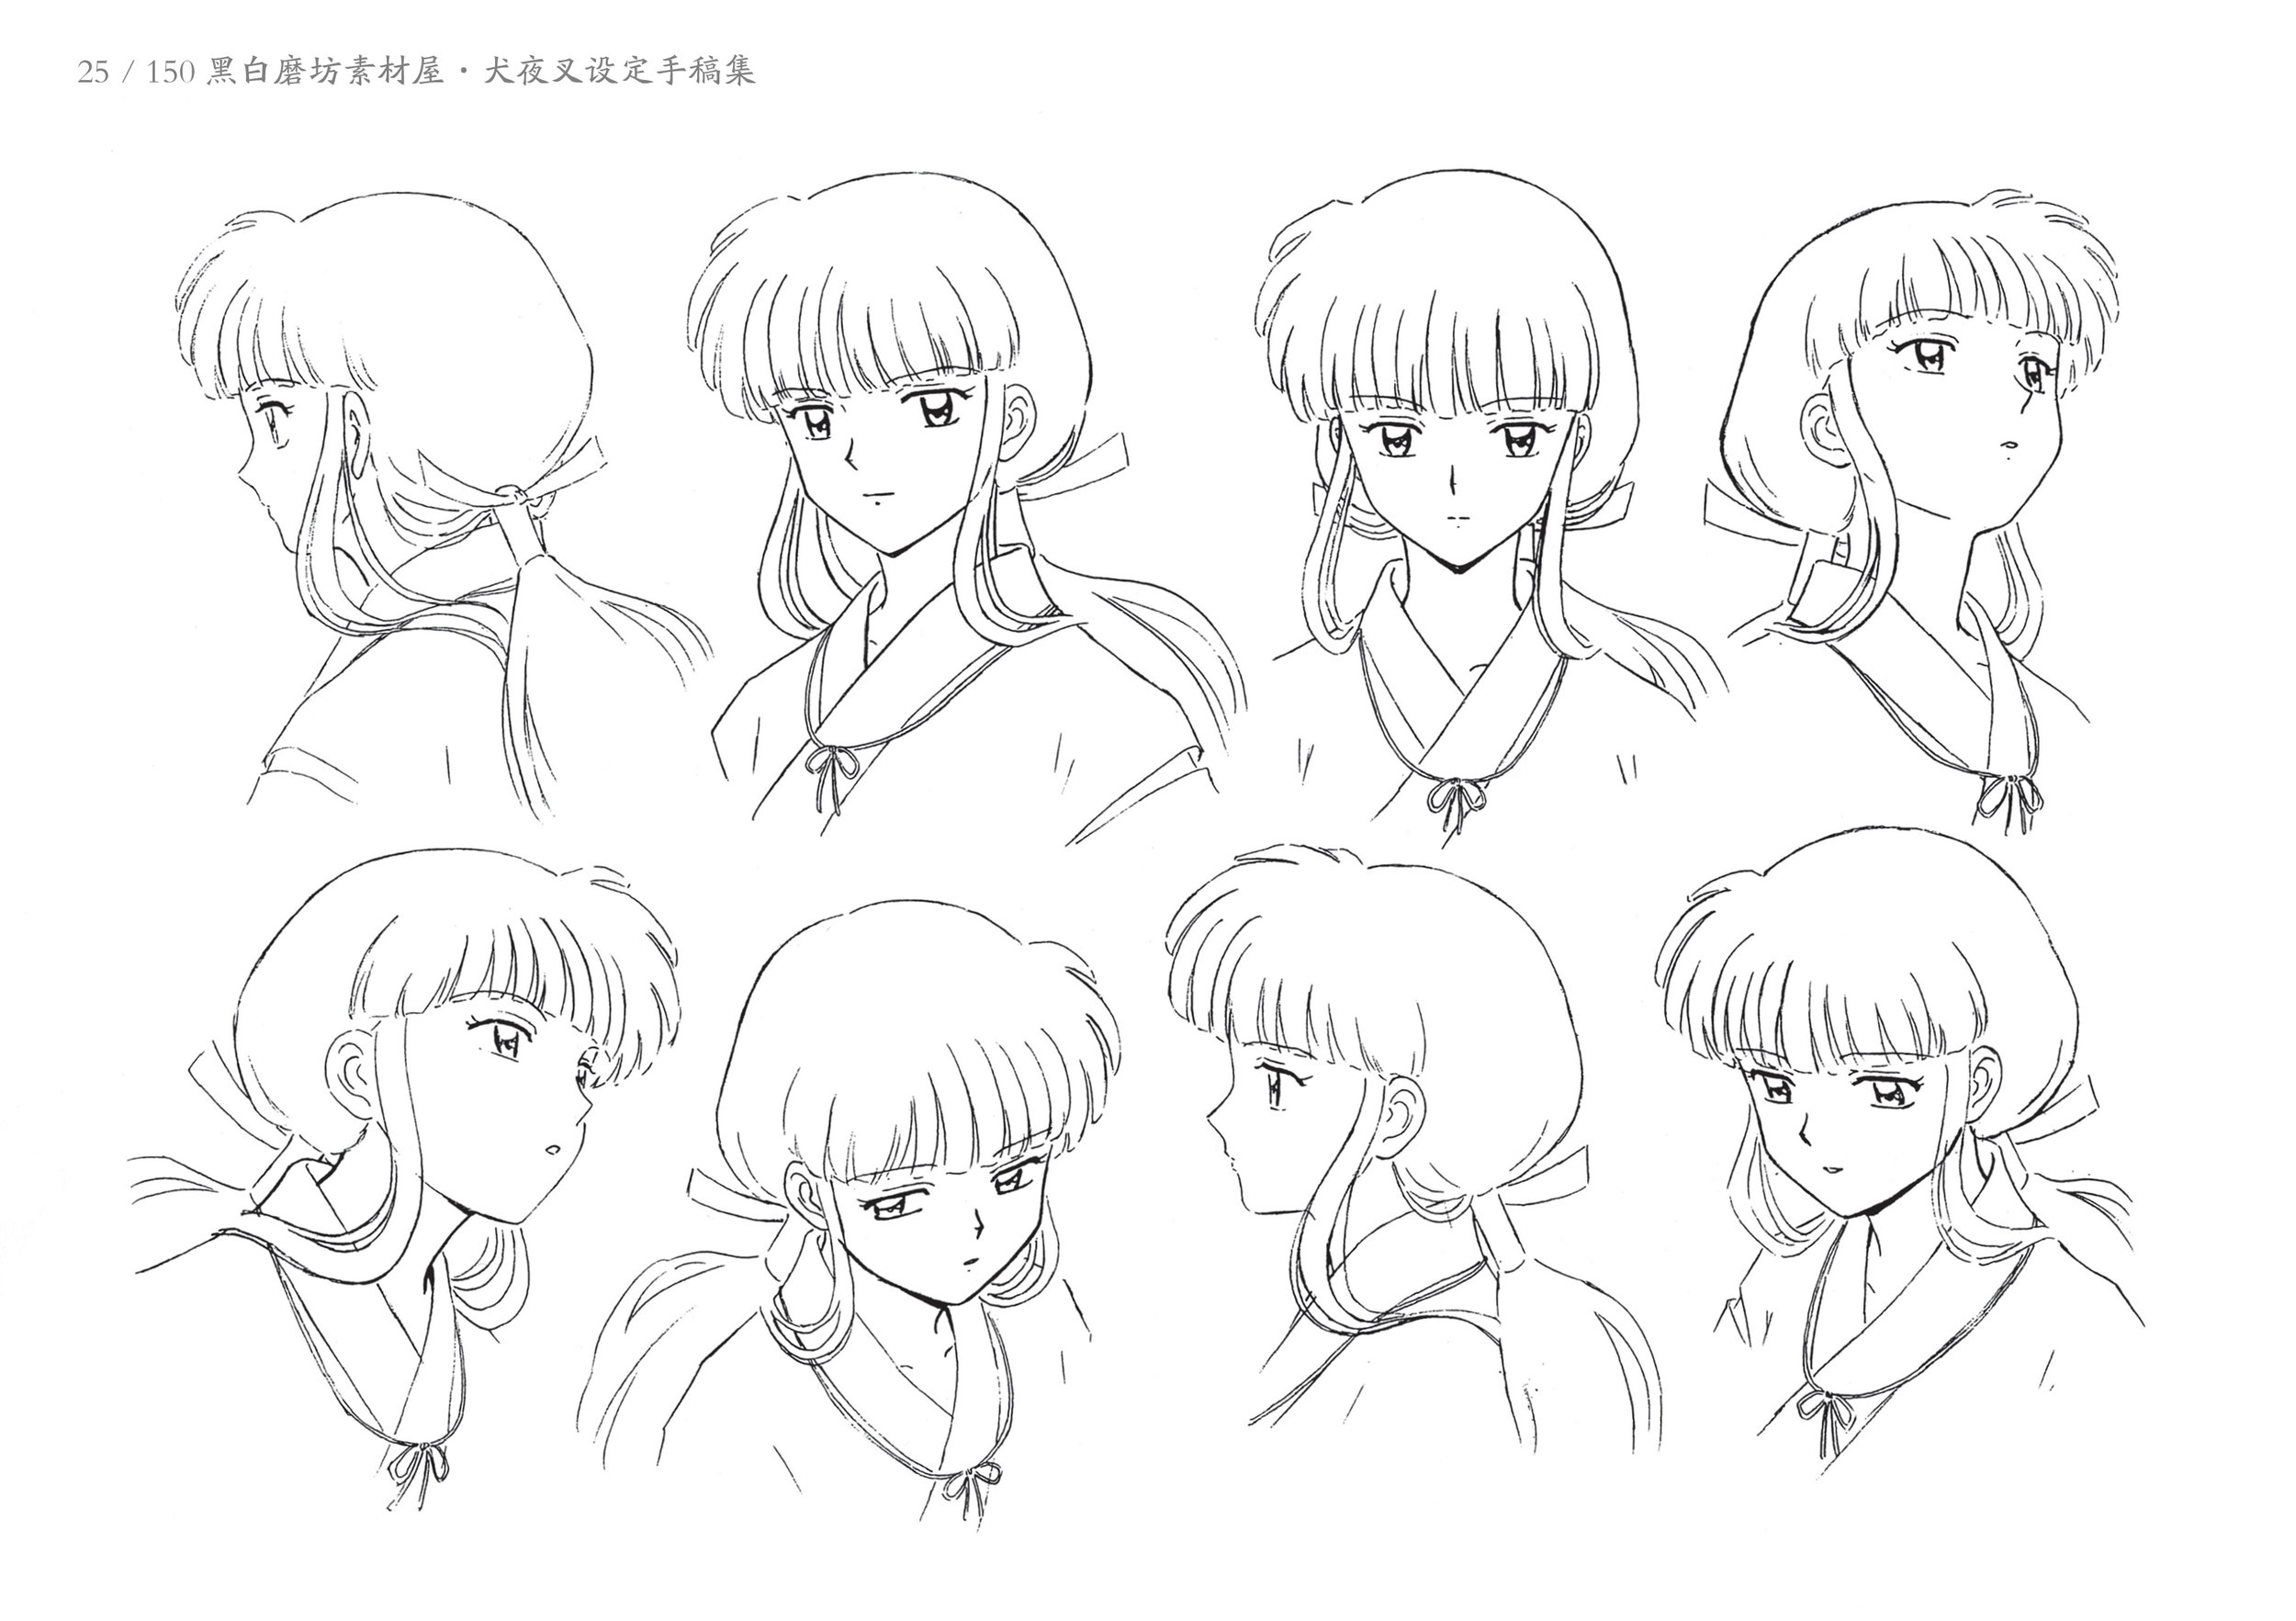 Art of the Inuyasha A - 19.jpg